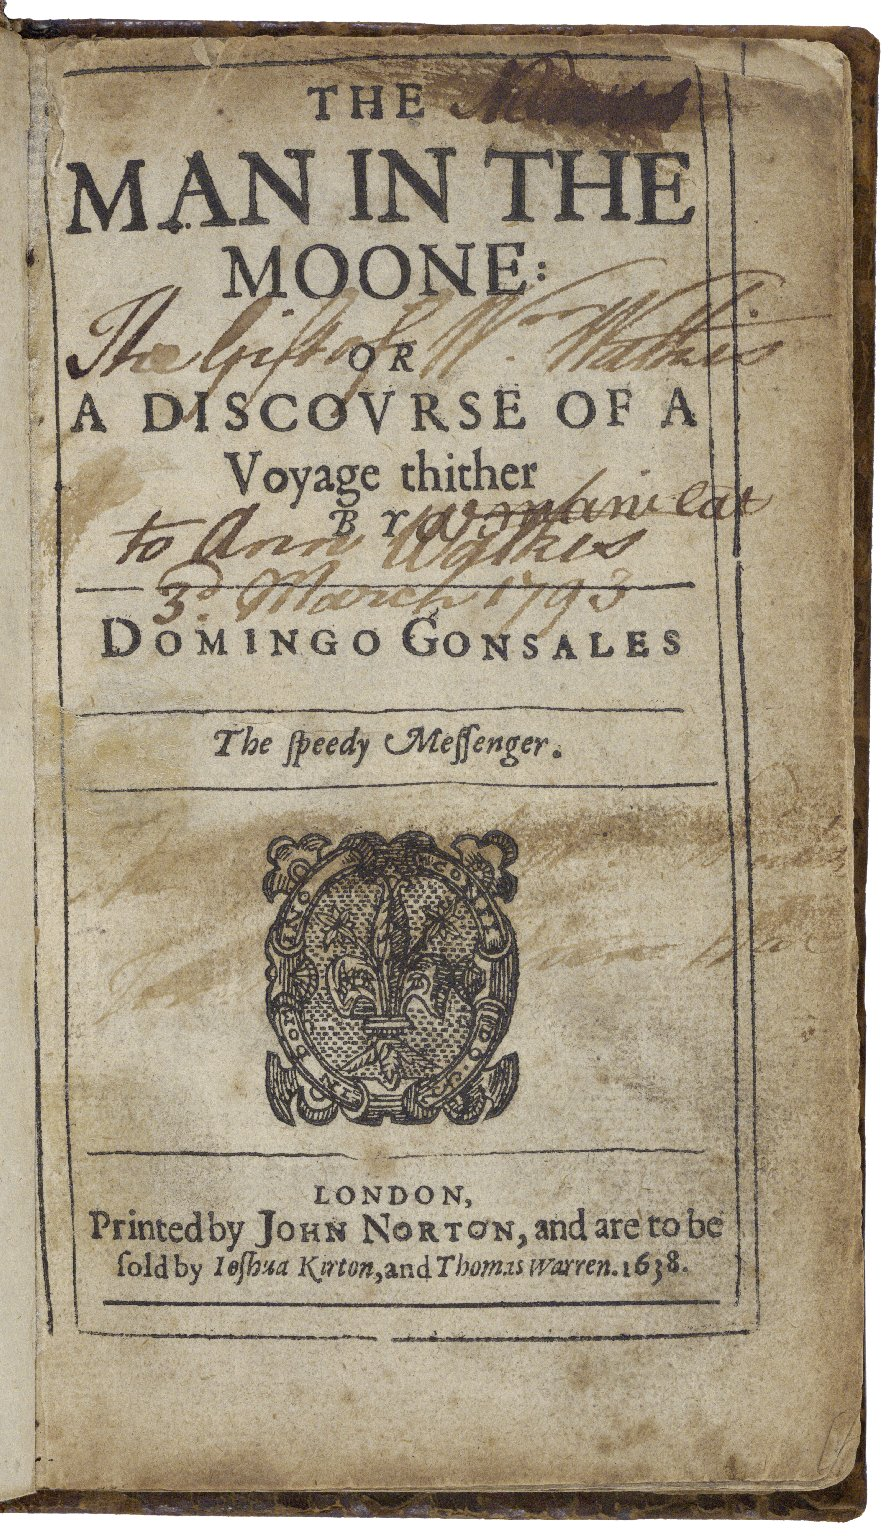 The man in the moone: or A discourse of a voyage thitherby Domingo Gonsales the speedy messenger.